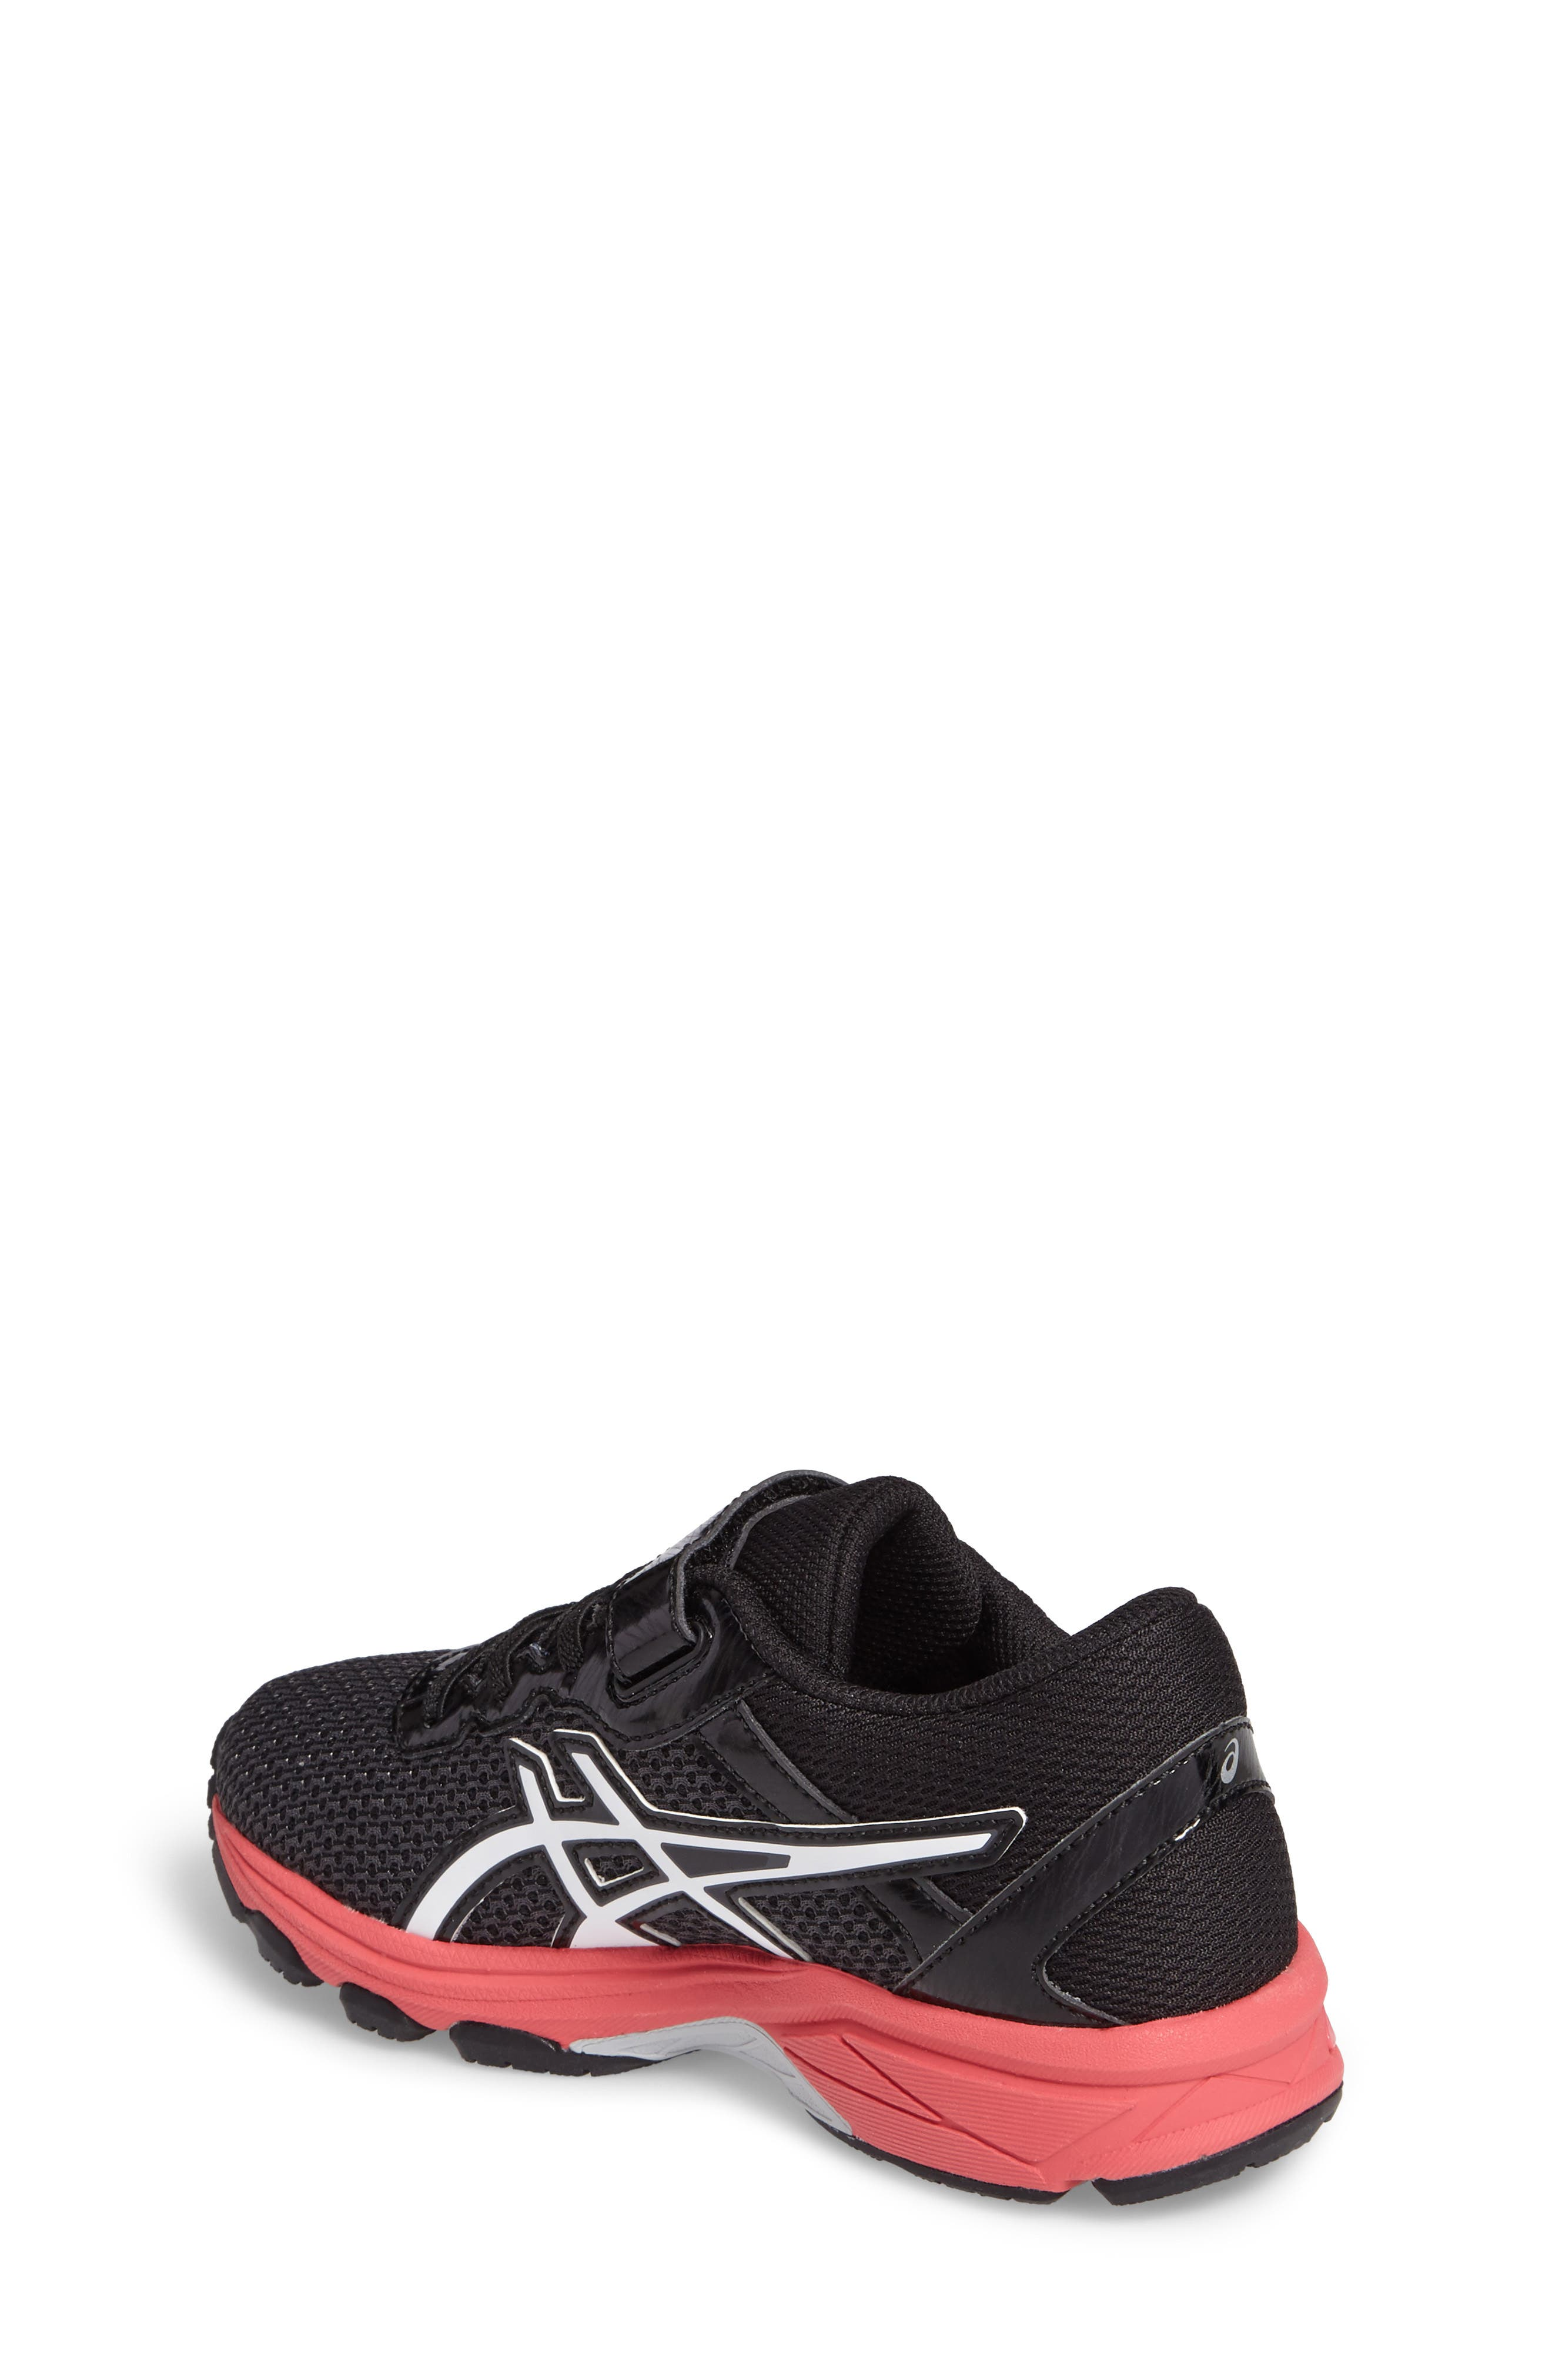 Asics GT-1000<sup>™</sup> 6 PS Sneaker,                             Alternate thumbnail 8, color,